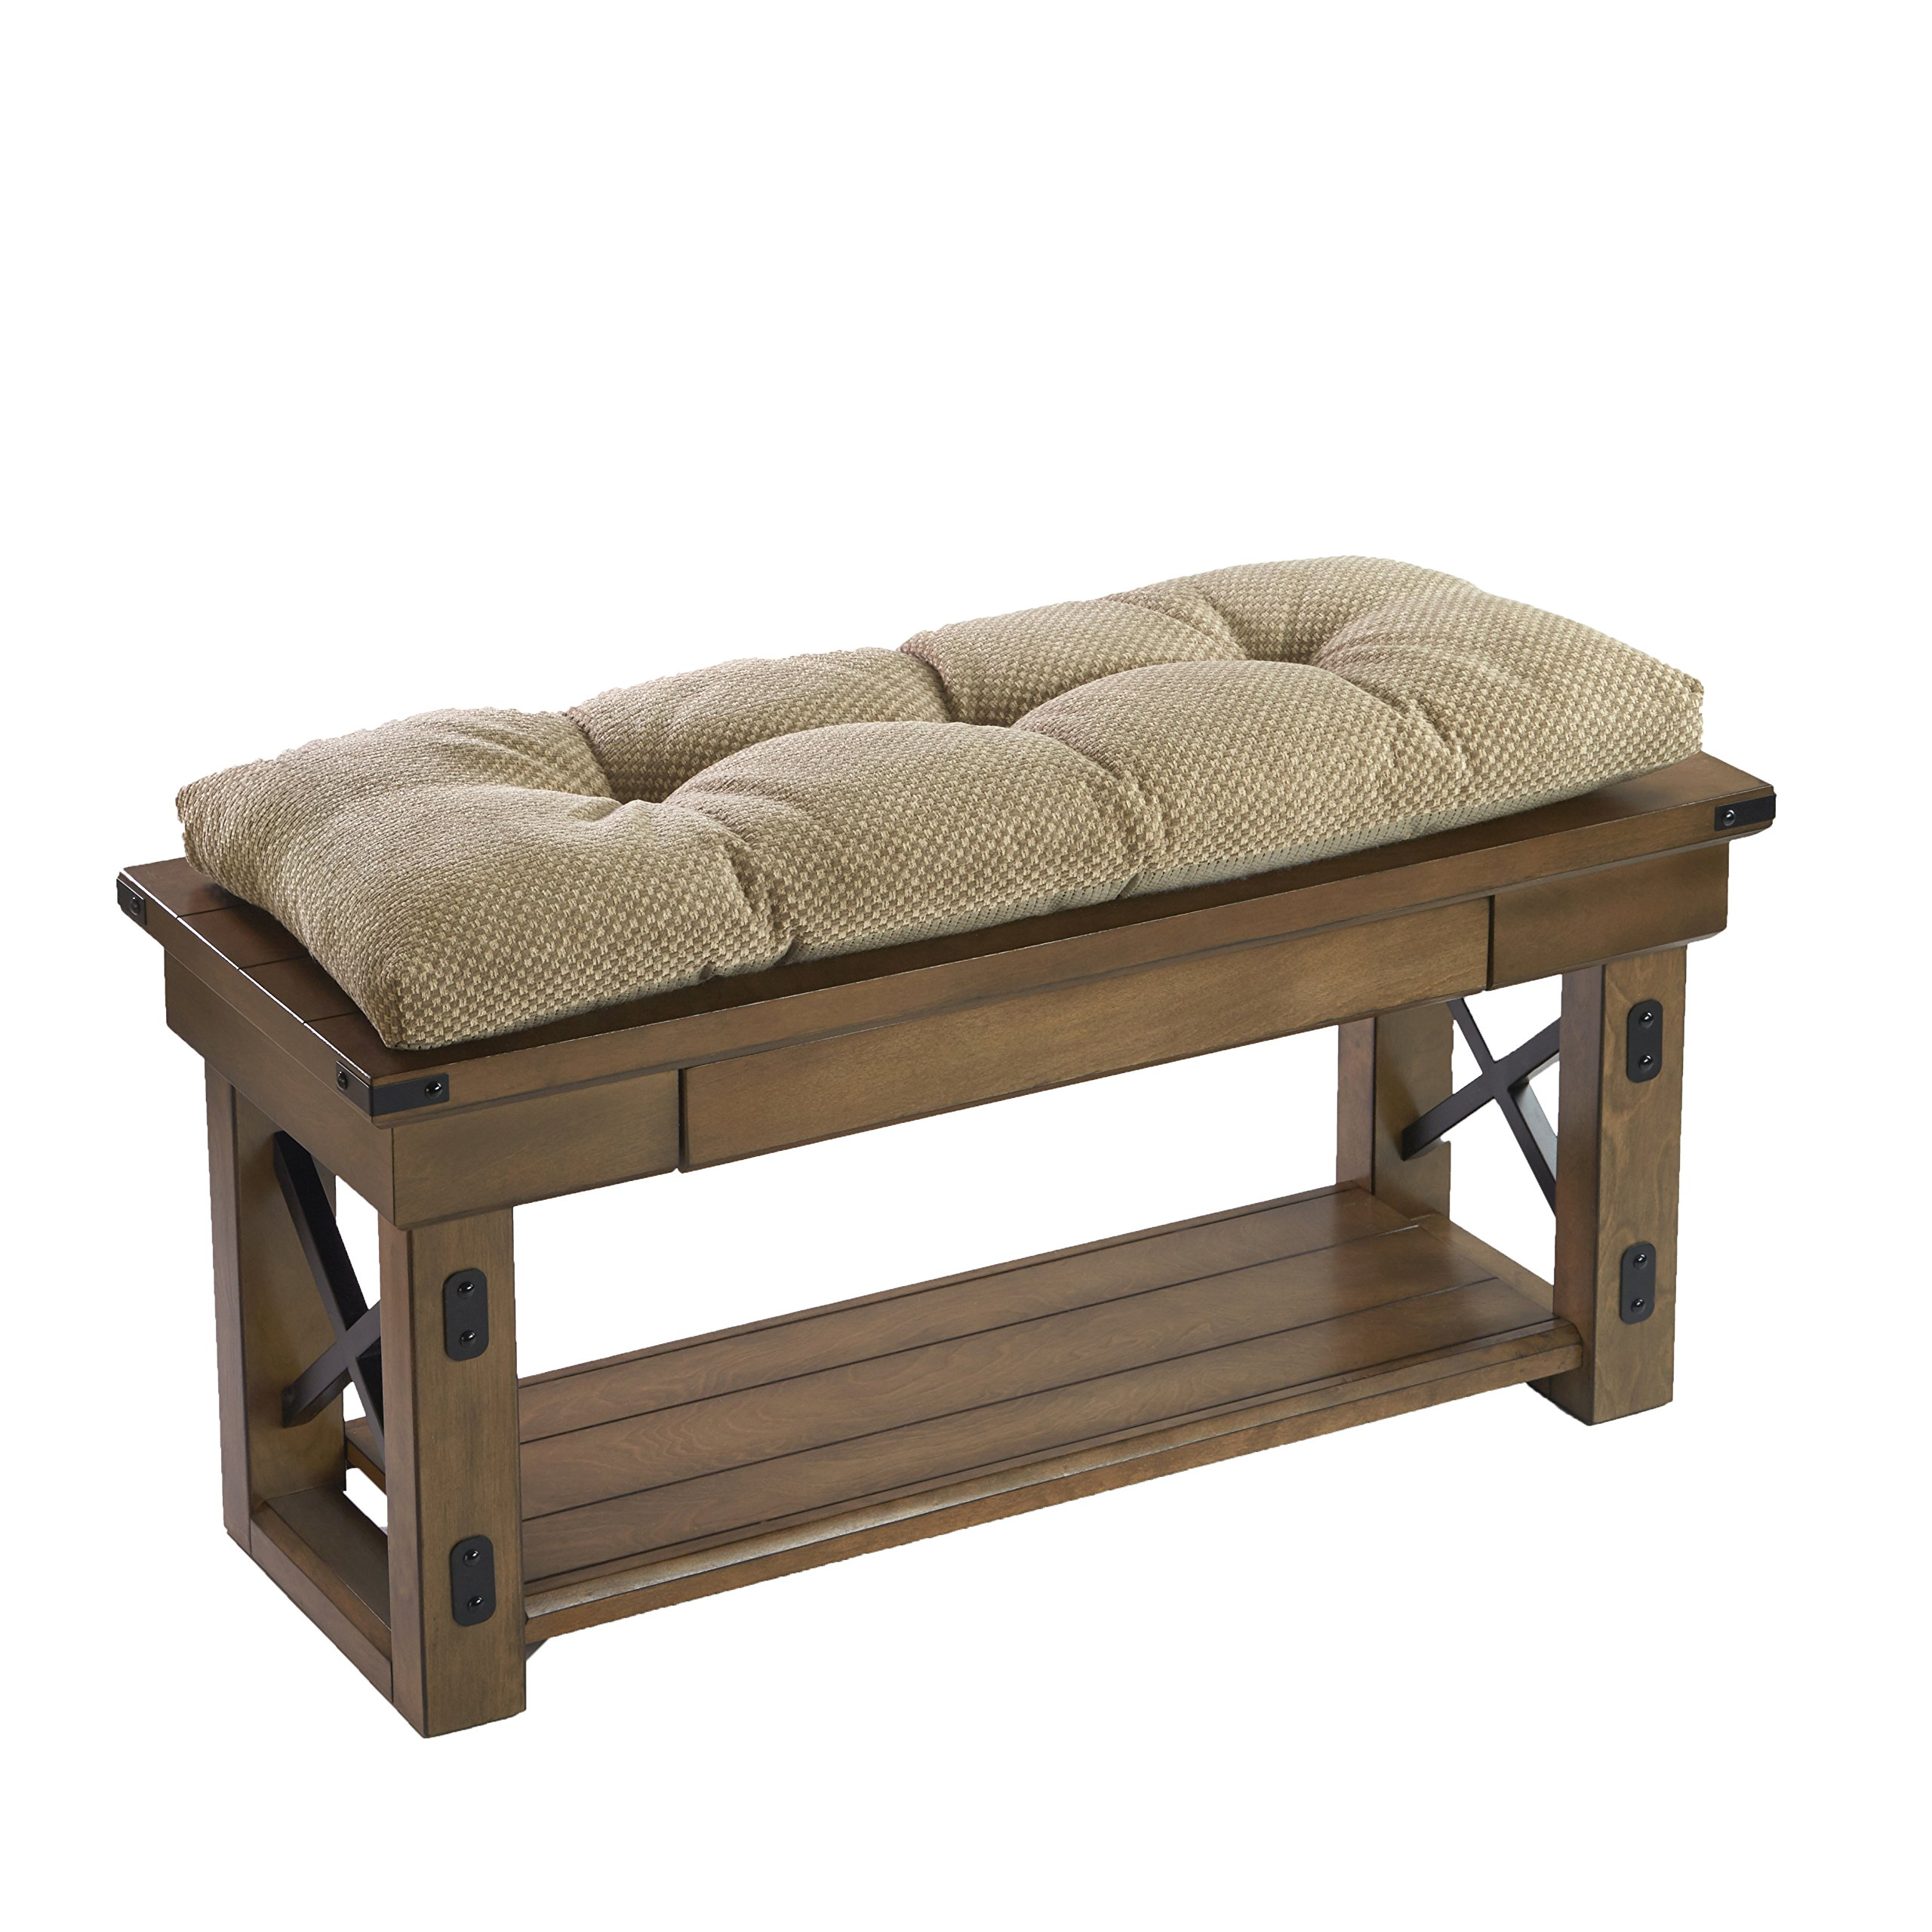 The Gripper Non-Slip Rembrandt Tufted Universal Bench Cushion, Tan by The Gripper (Image #1)